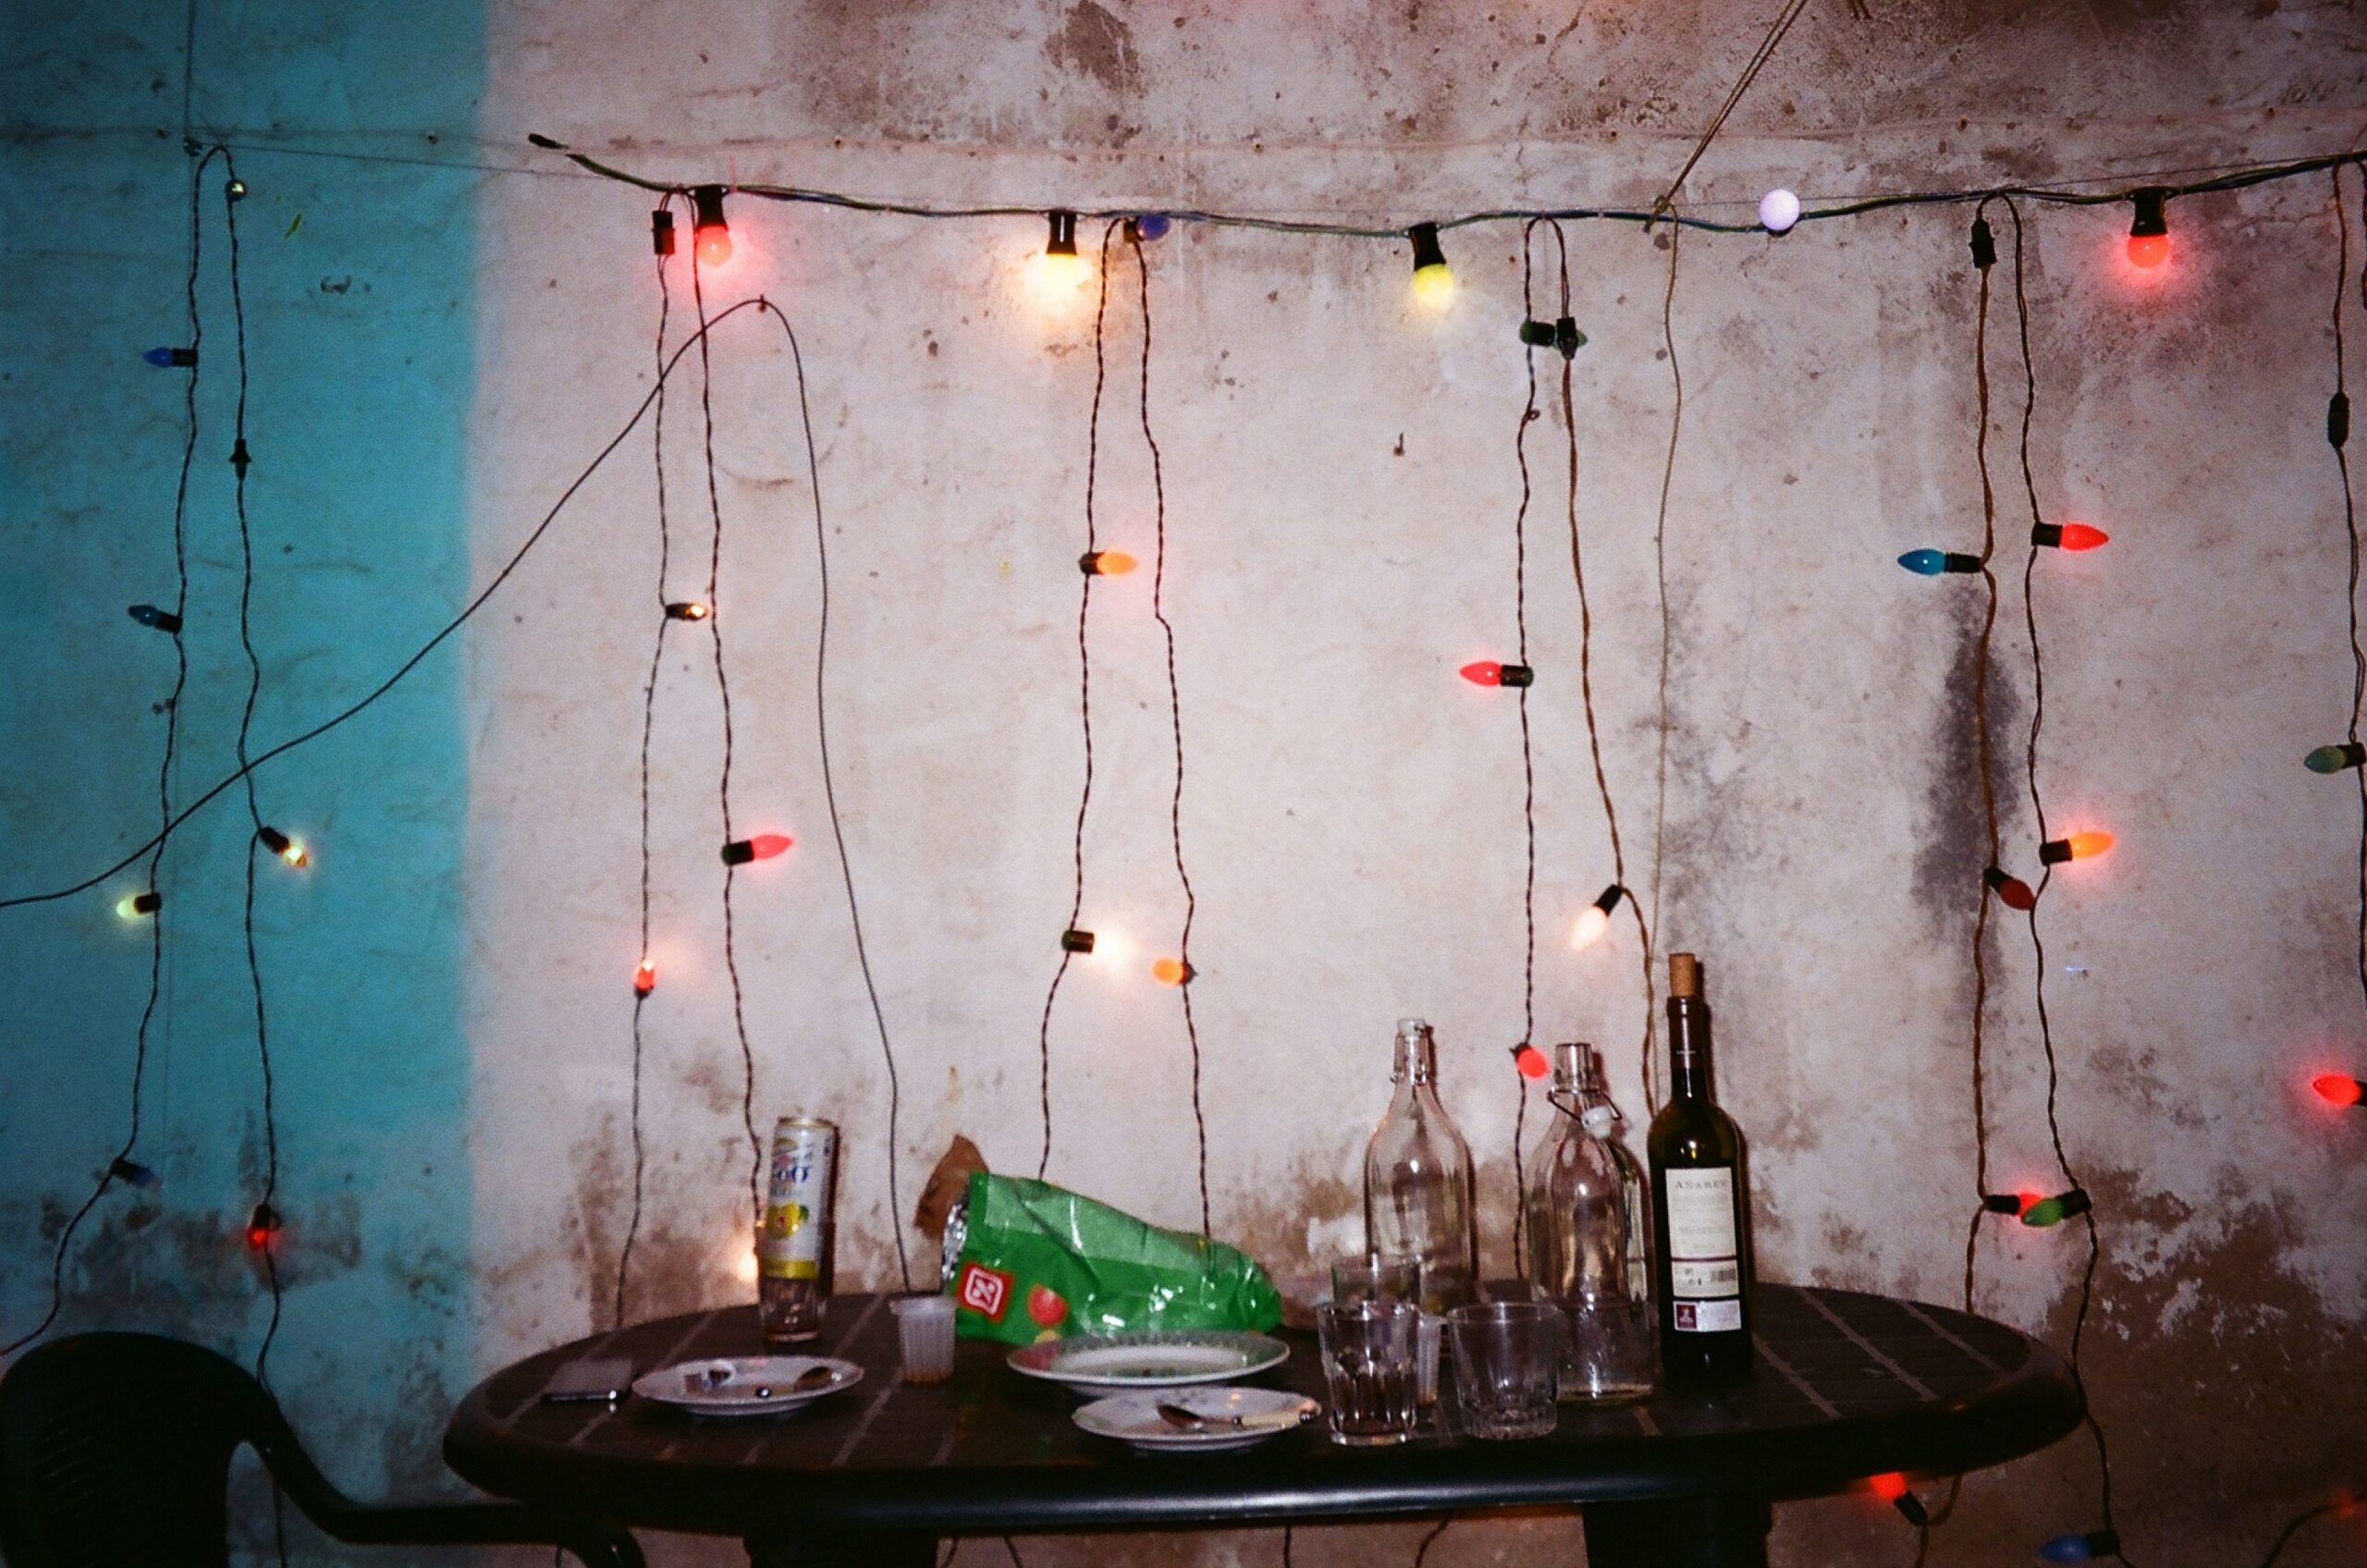 A series of fairy lights hang on an old wall behind a table covered in empty bottles and plates.